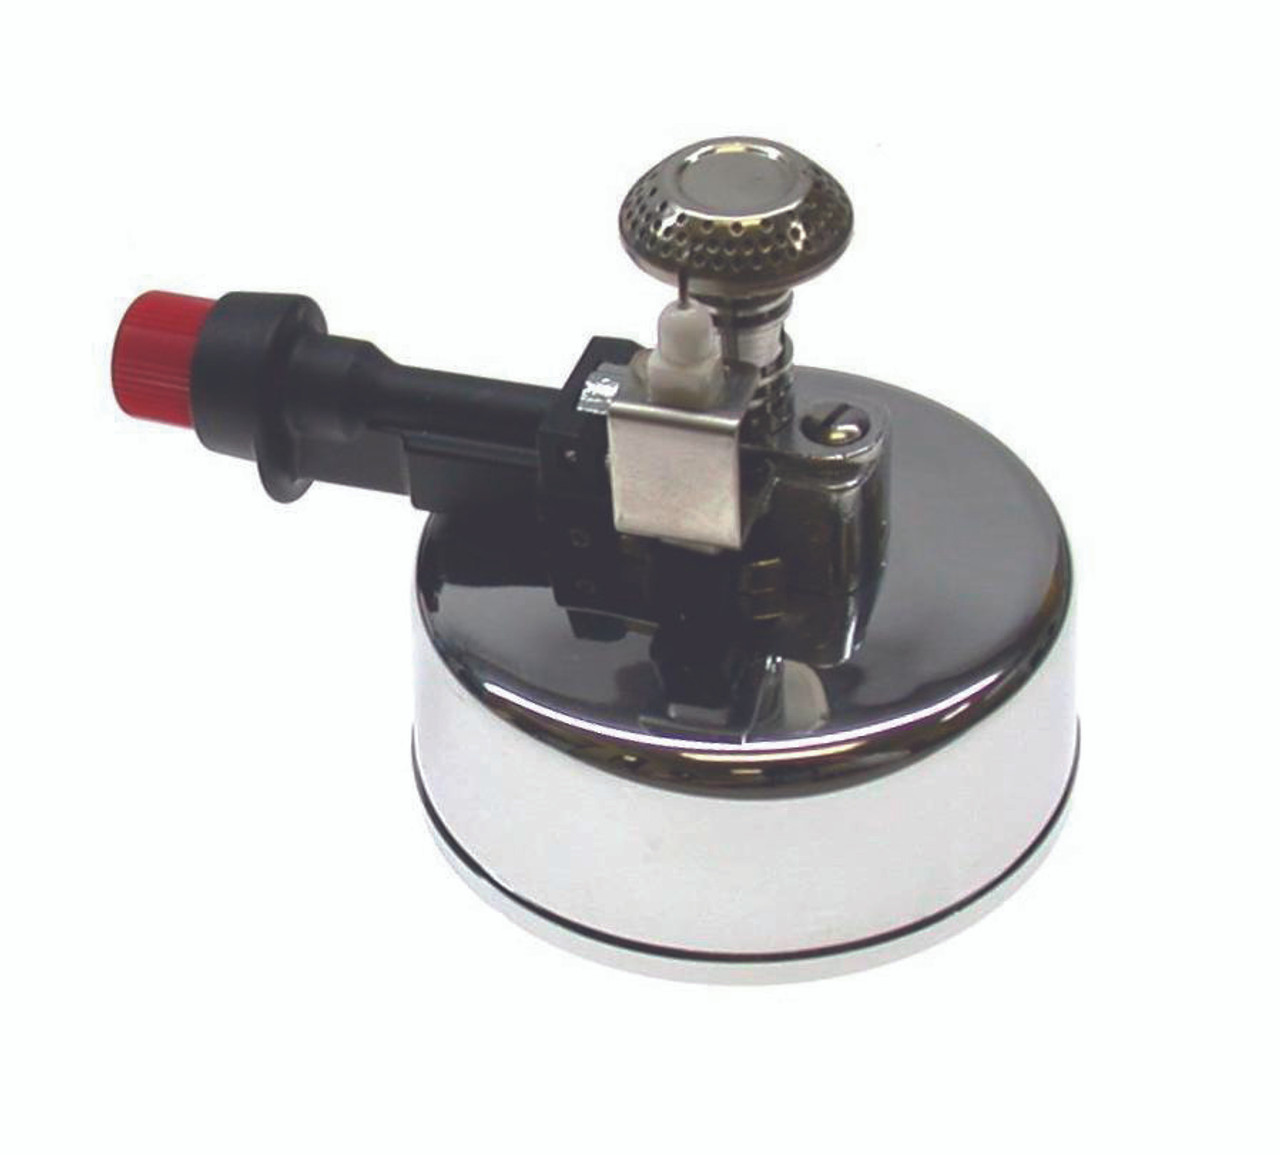 Blazer Brush Flame Burner